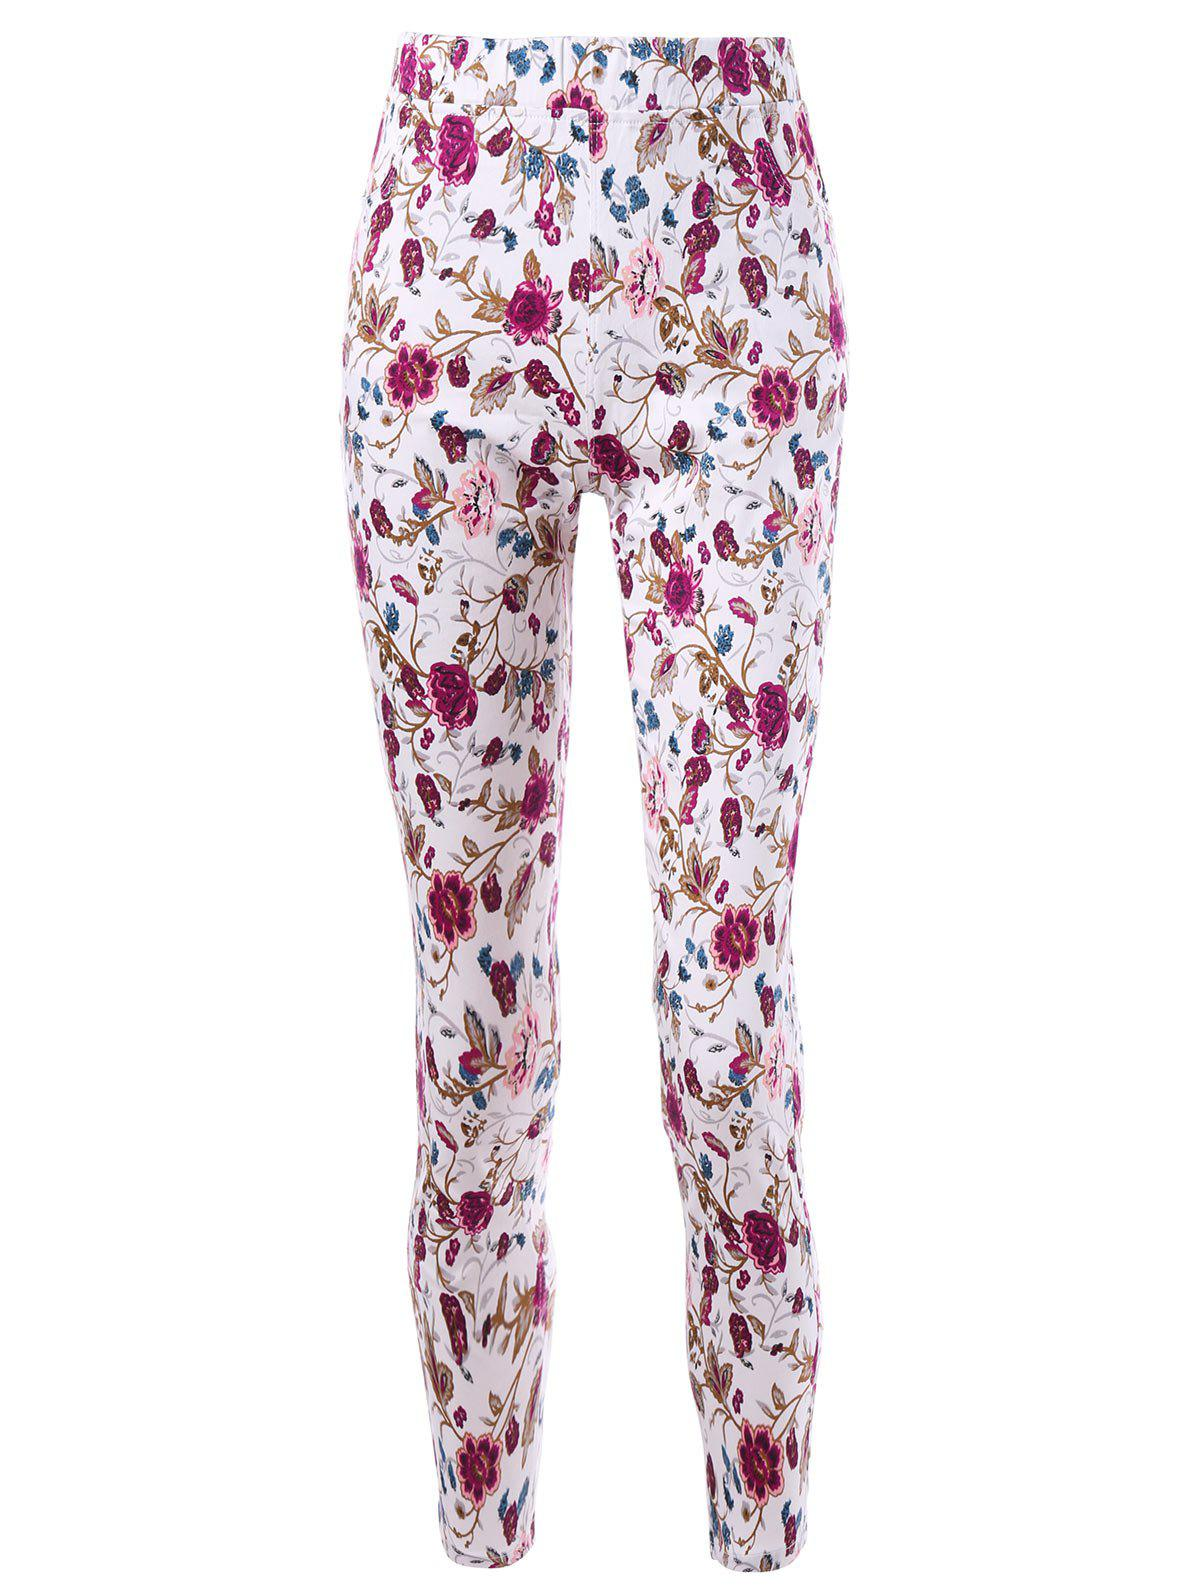 Fashion Patch Pockets Allover Floral Tight Pants